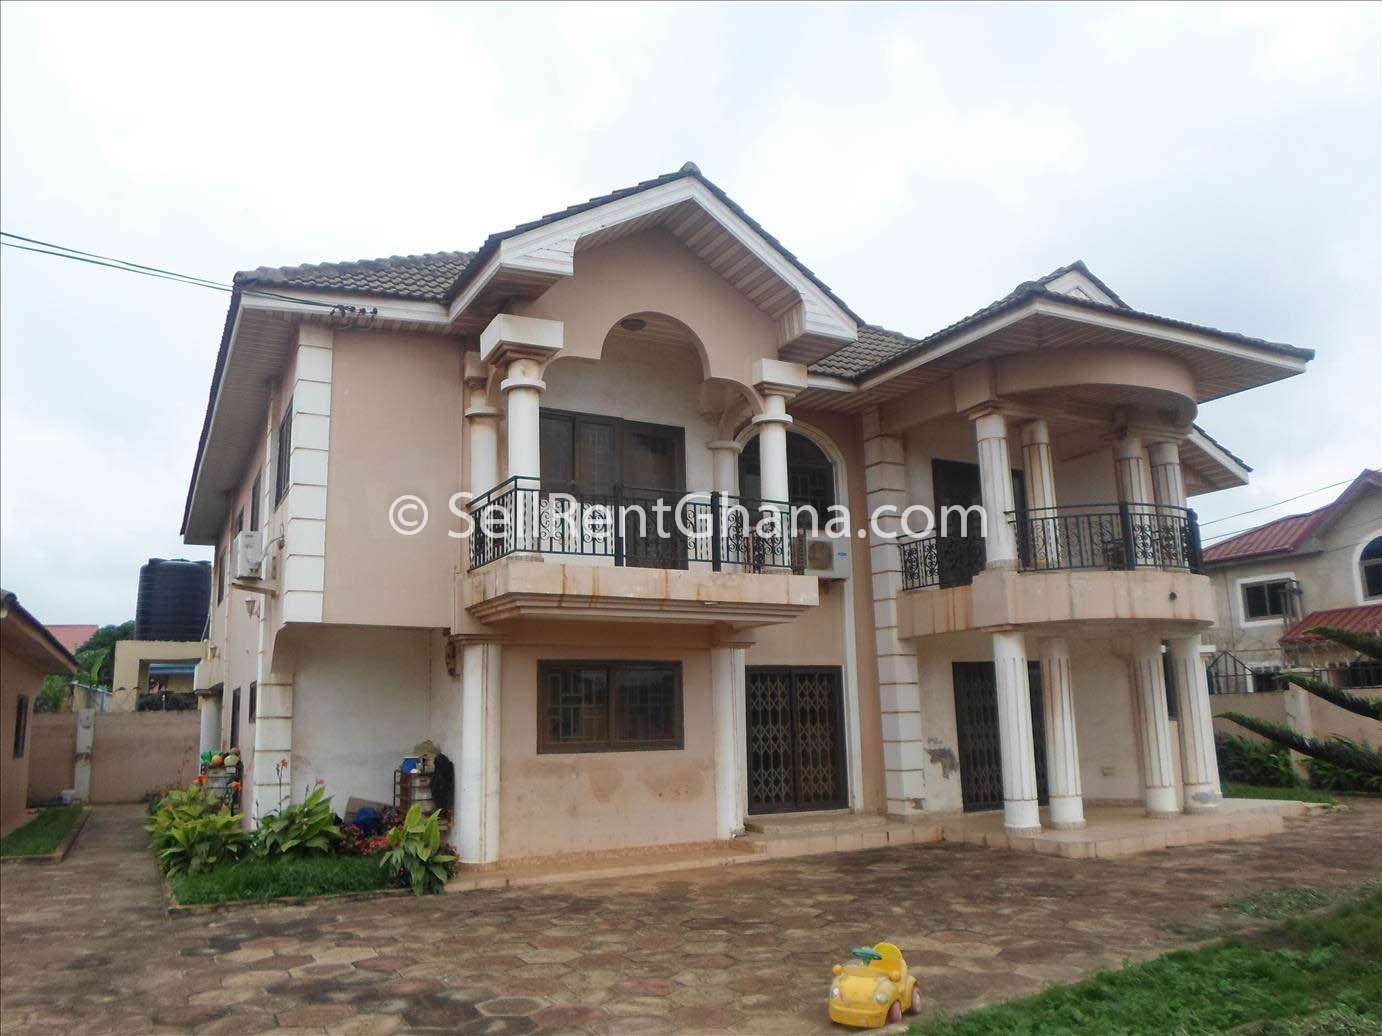 6 Bedroom House For Sale In Spintex Sellrent Ghana